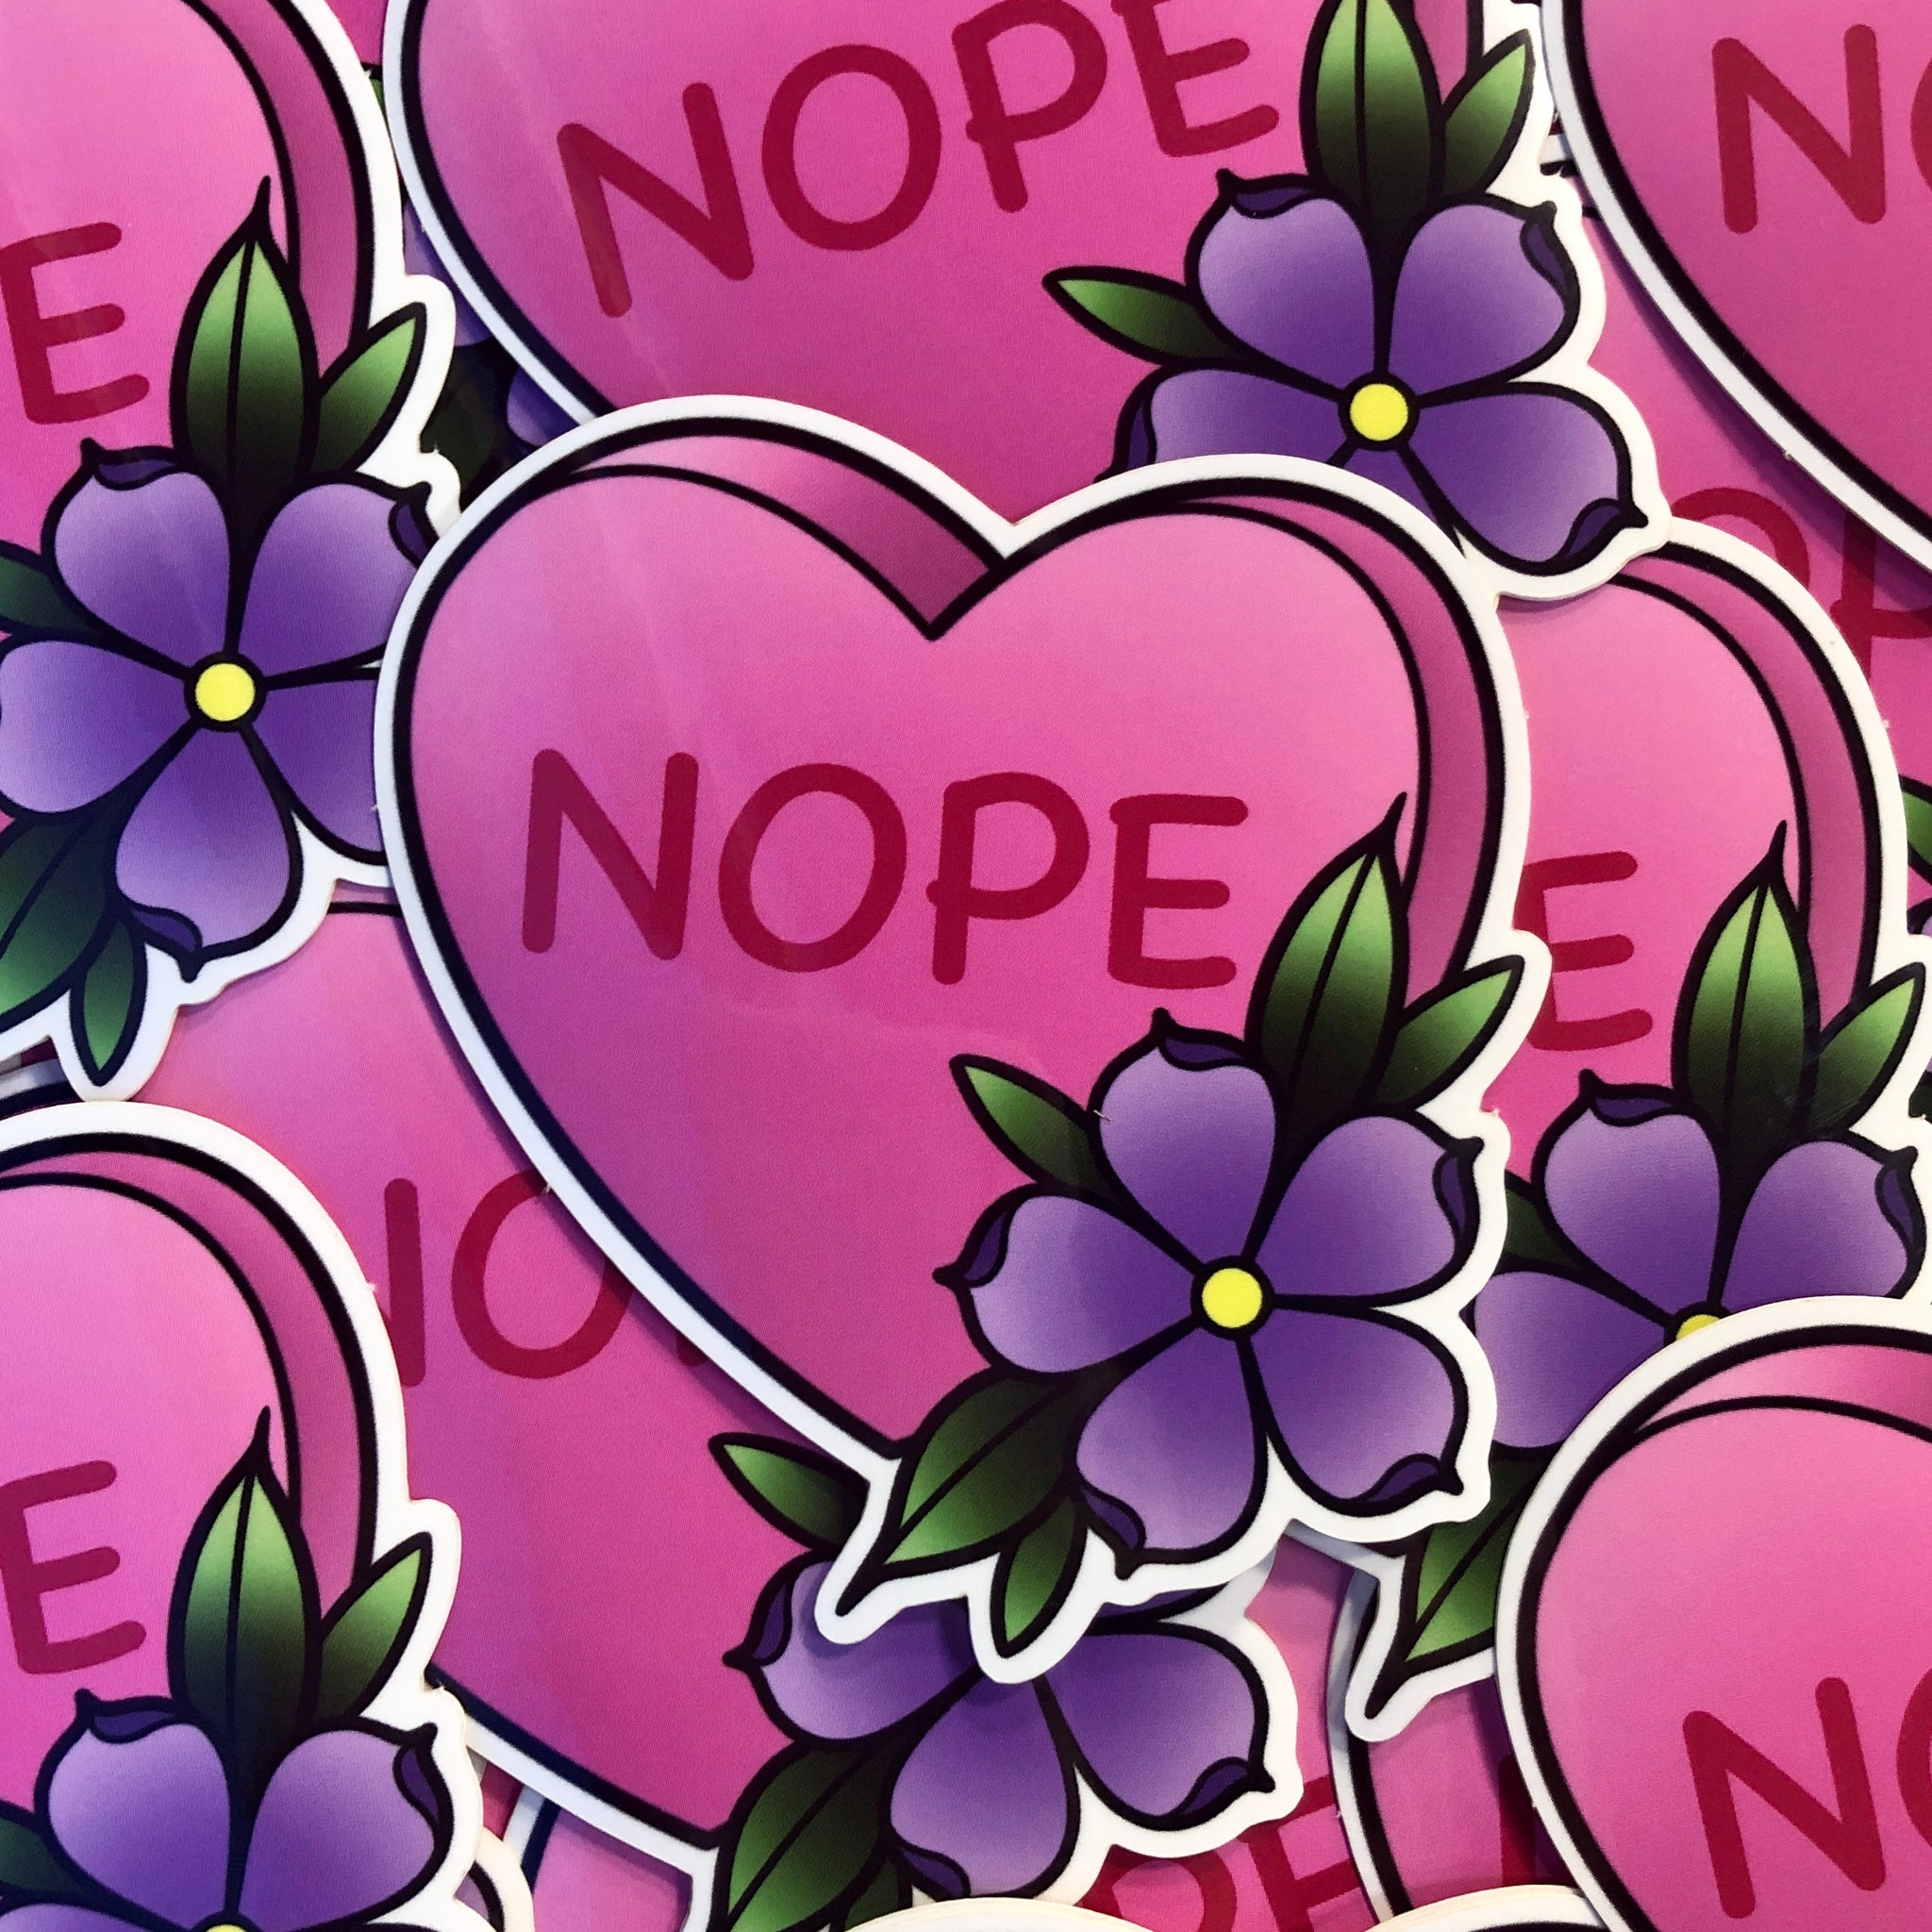 Nope - Sticker